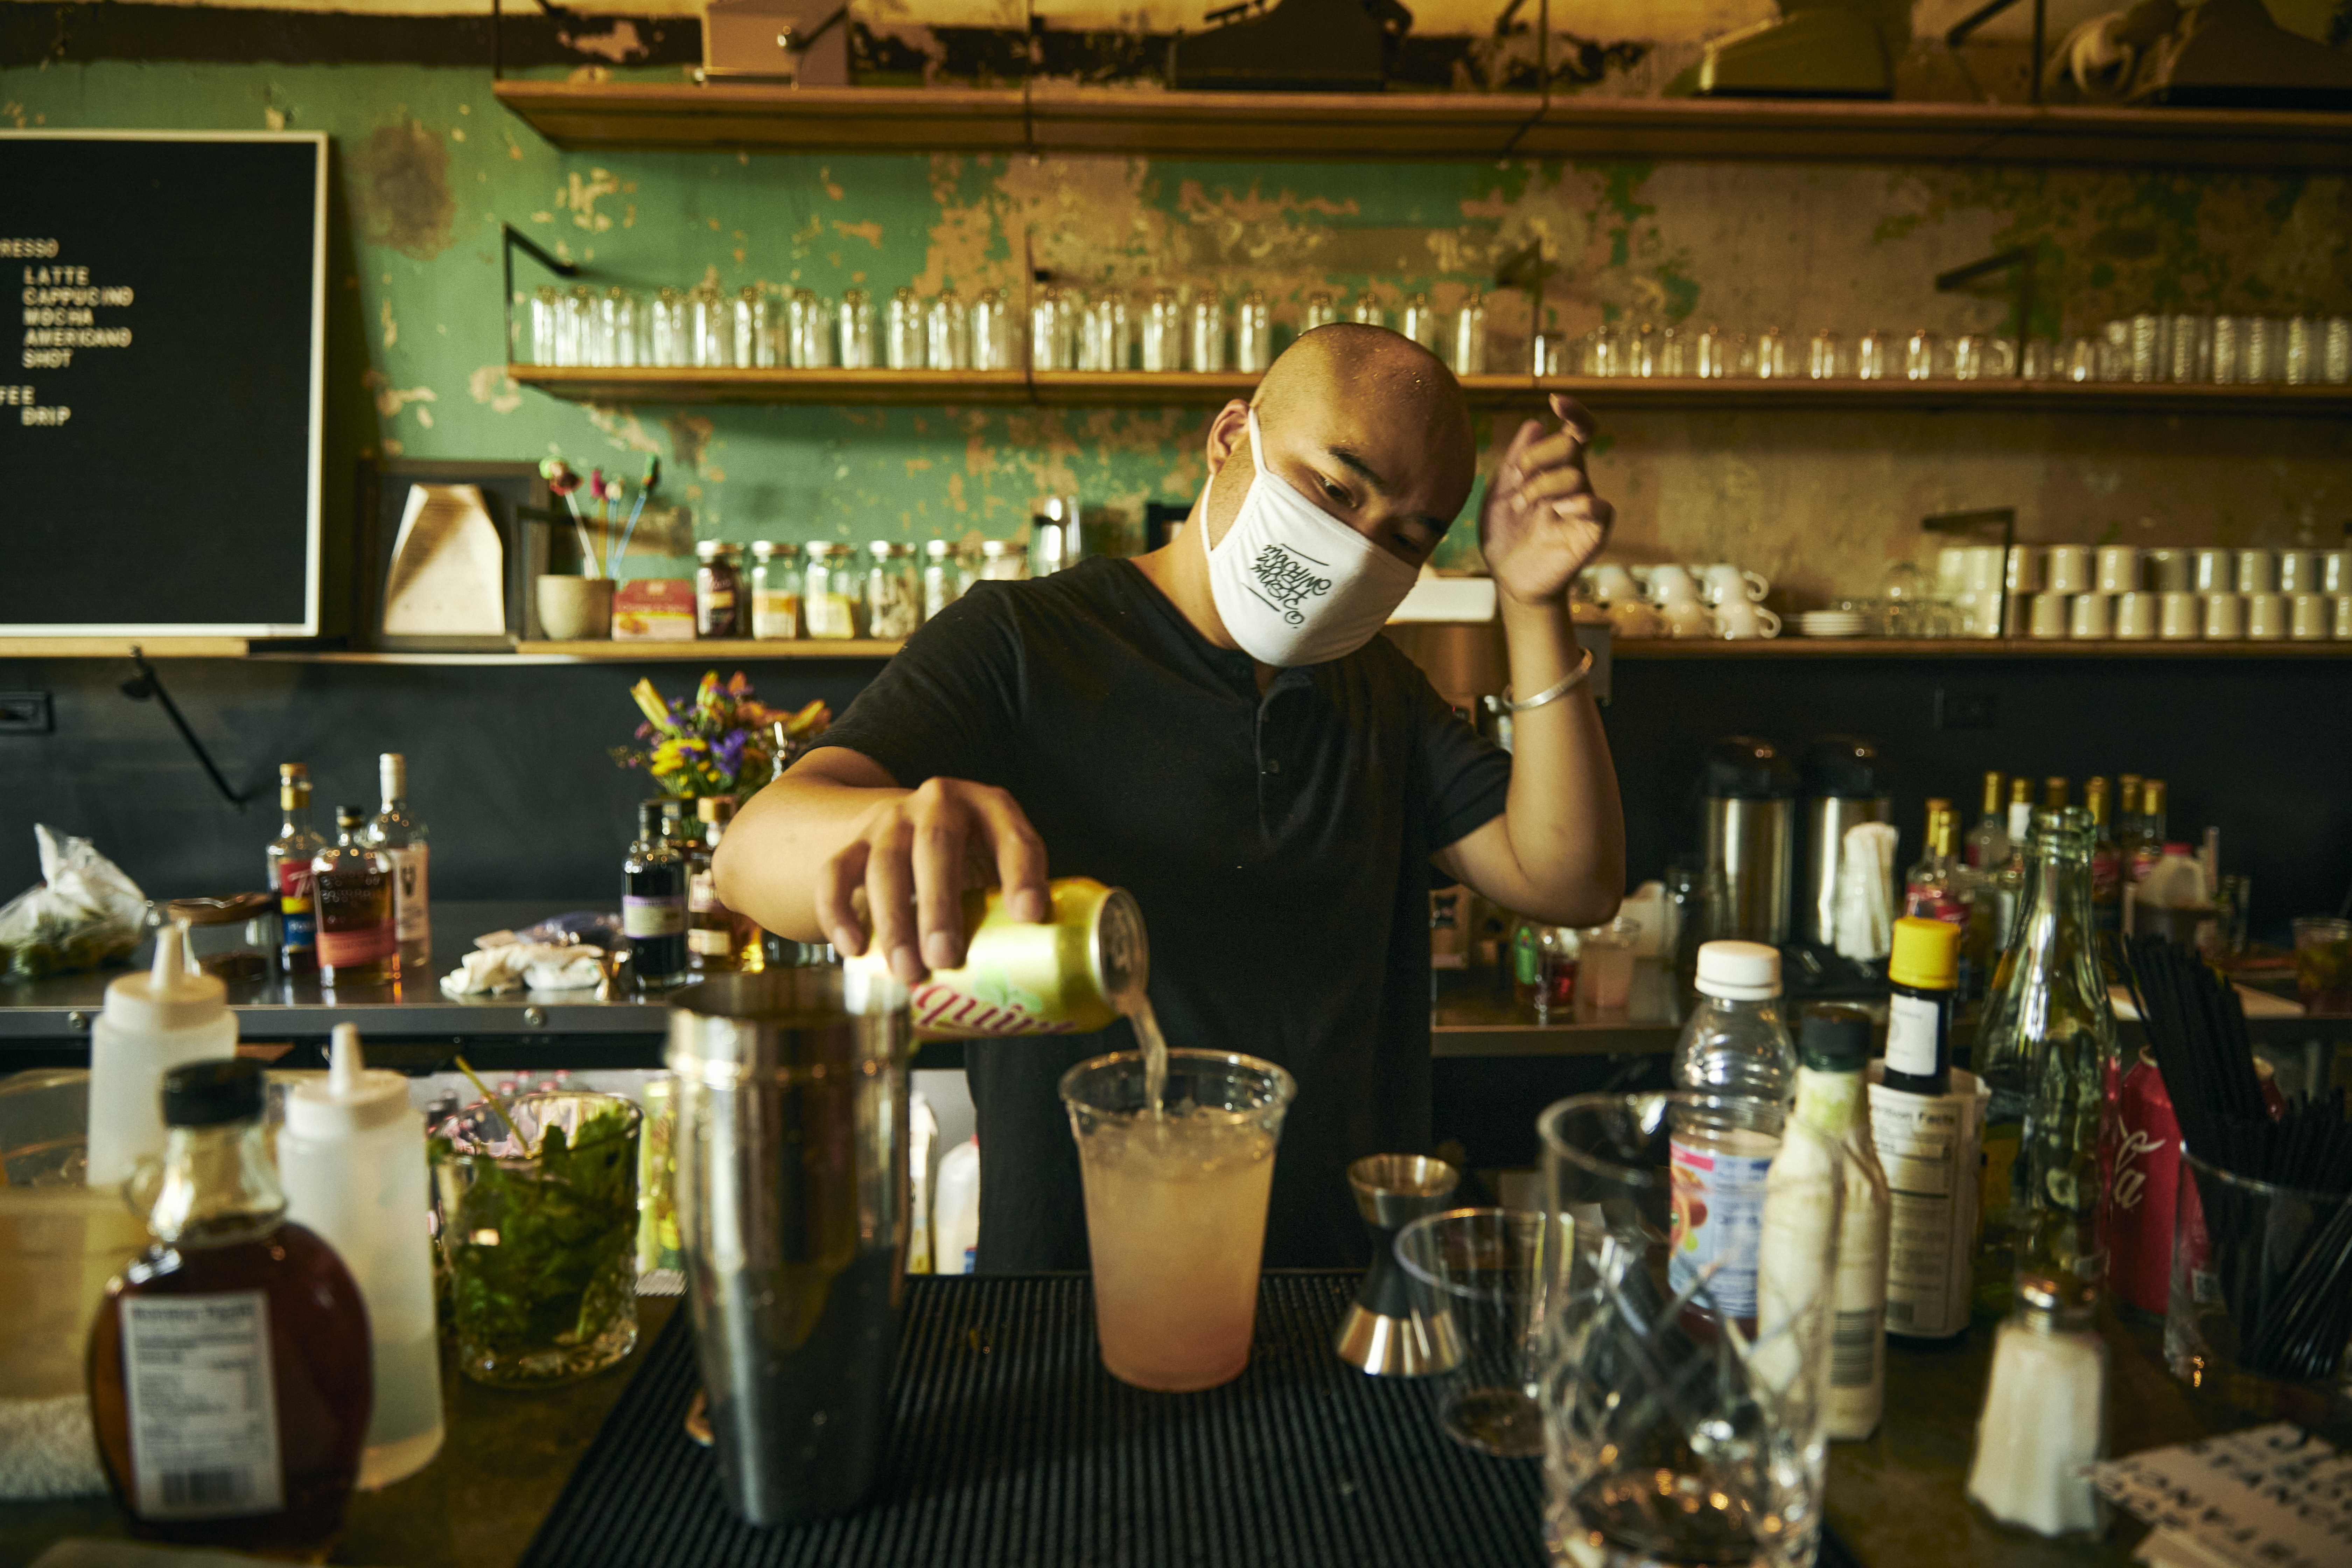 A person with a shaved head and a face mask pours a cocktail from a metal shaker into a plastic cup.